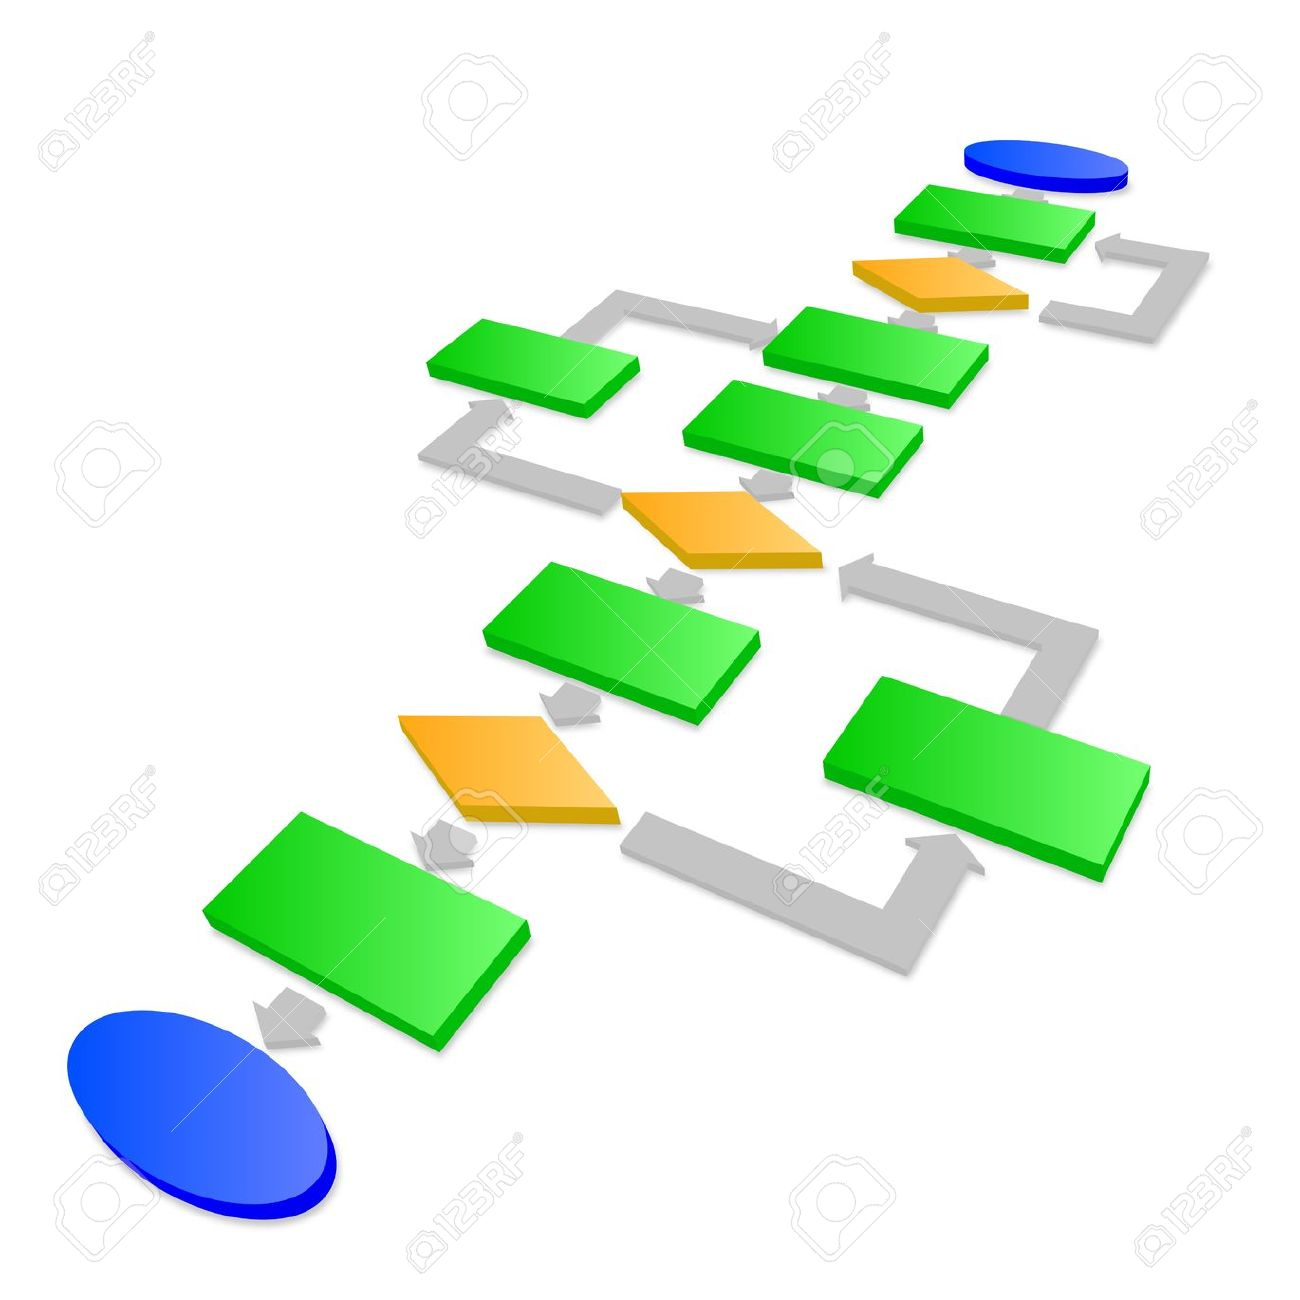 Illustration of a flowchart symbol for workflow stock photo illustration of a flowchart symbol for workflow stock illustration 14189704 buycottarizona Image collections